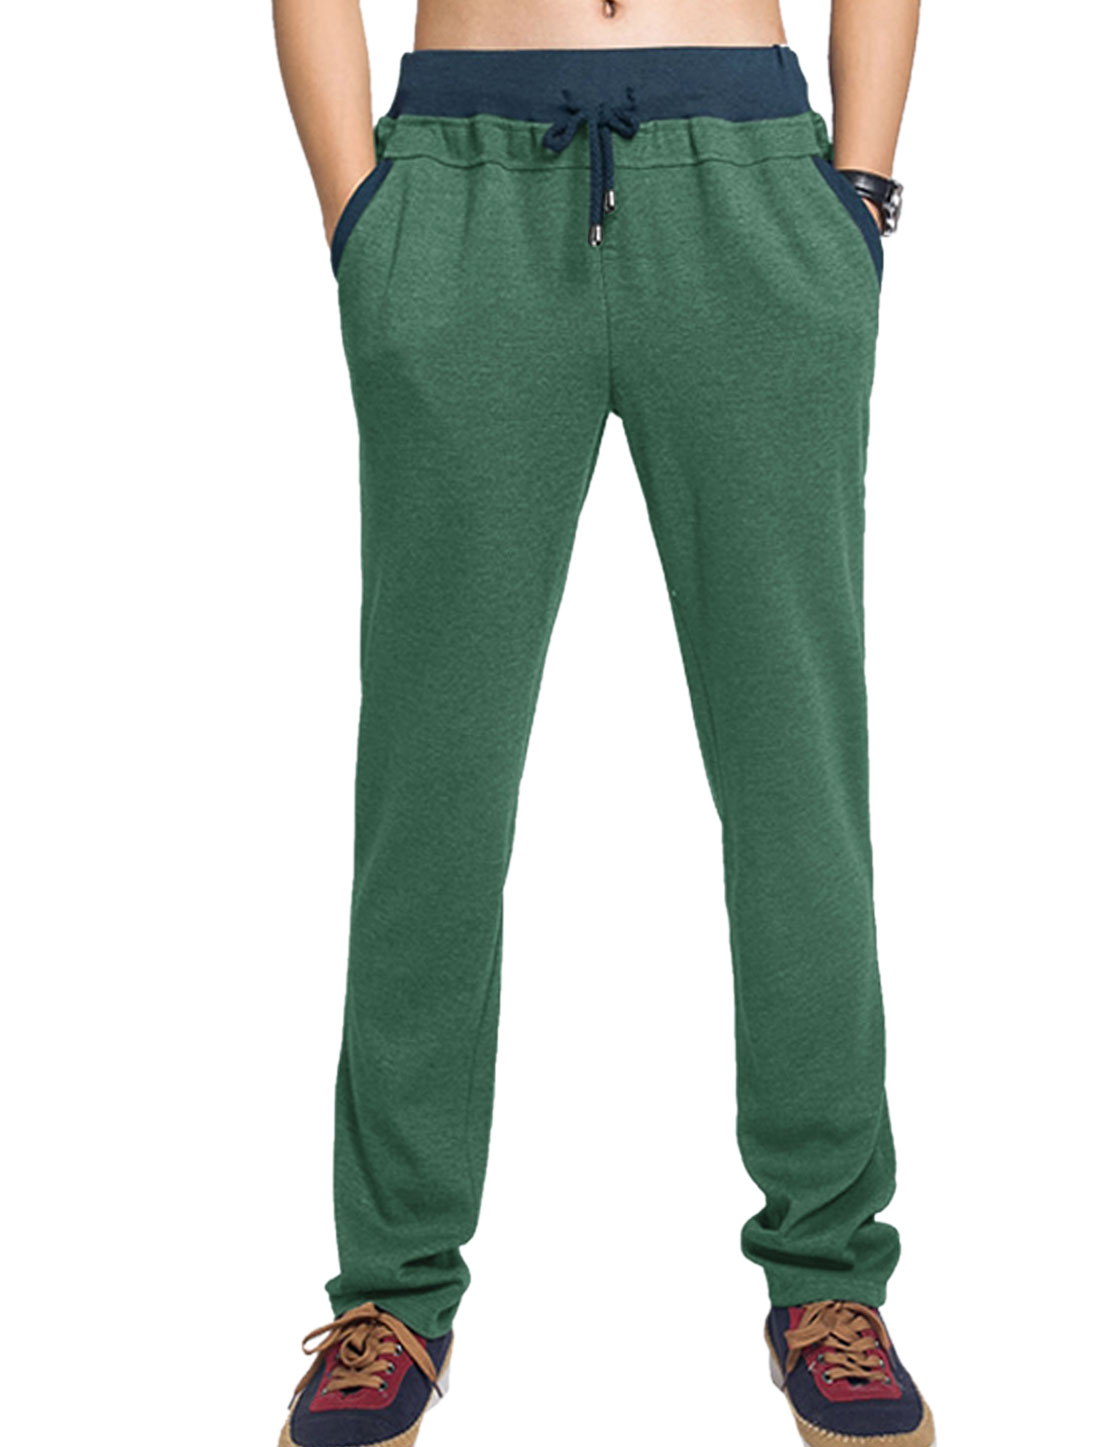 Men Leisure Style Slant Front Pockets Hip Pockets Trousers Green W34